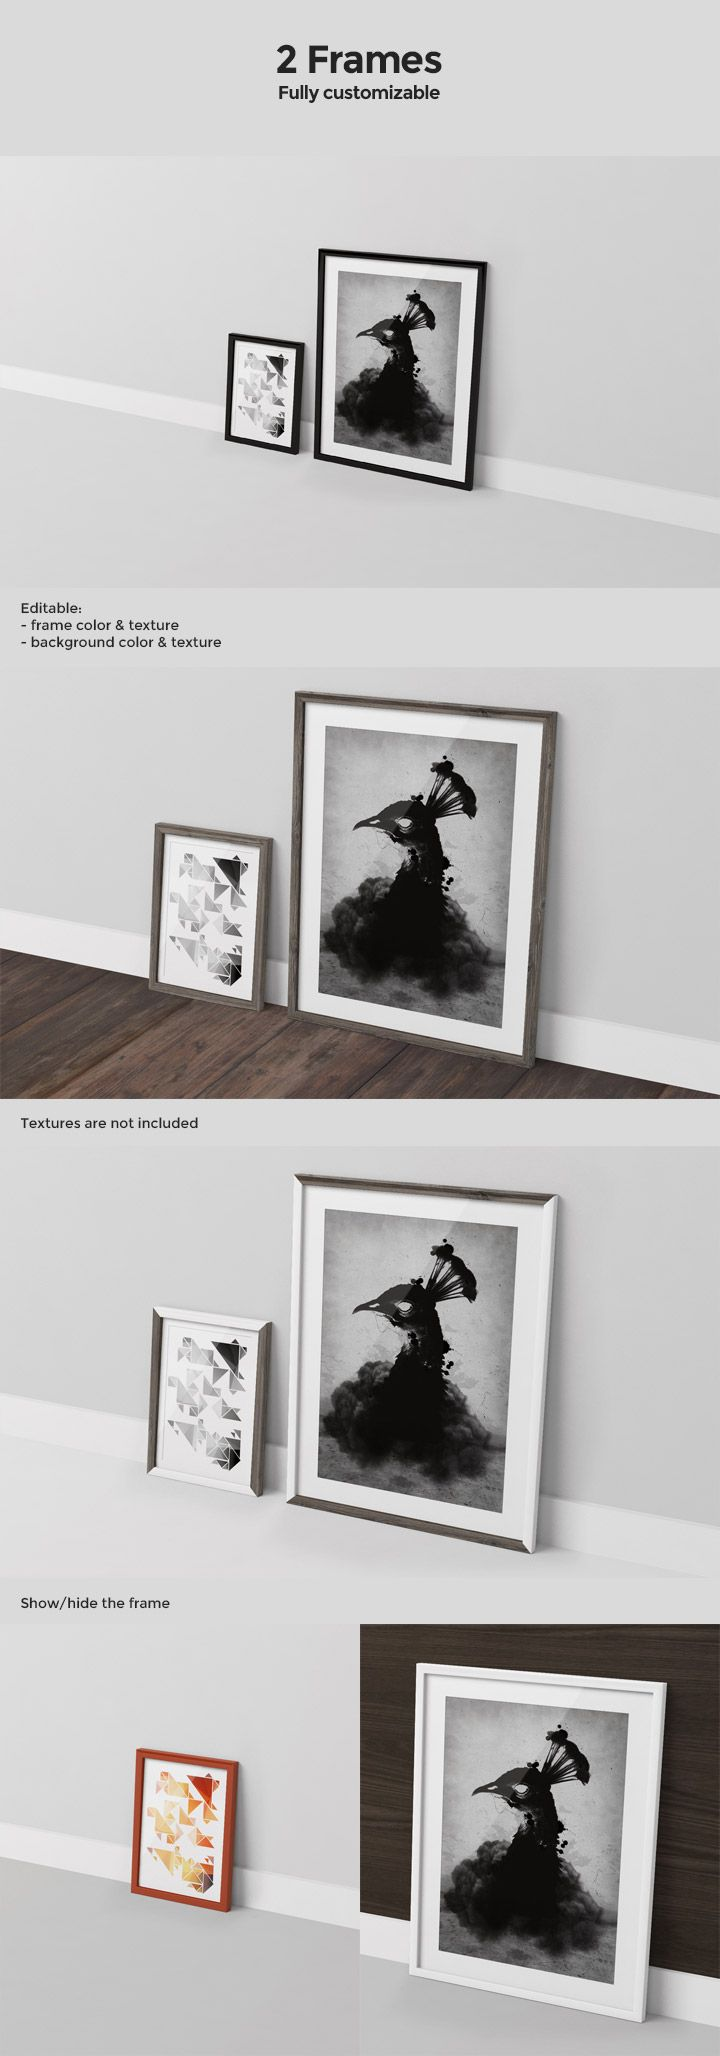 39 best images about mockups on pinterest brown paper bags free create your own scene to showcase your artwork with this frame mock up collection 10 mock up 6 frame jeuxipadfo Choice Image